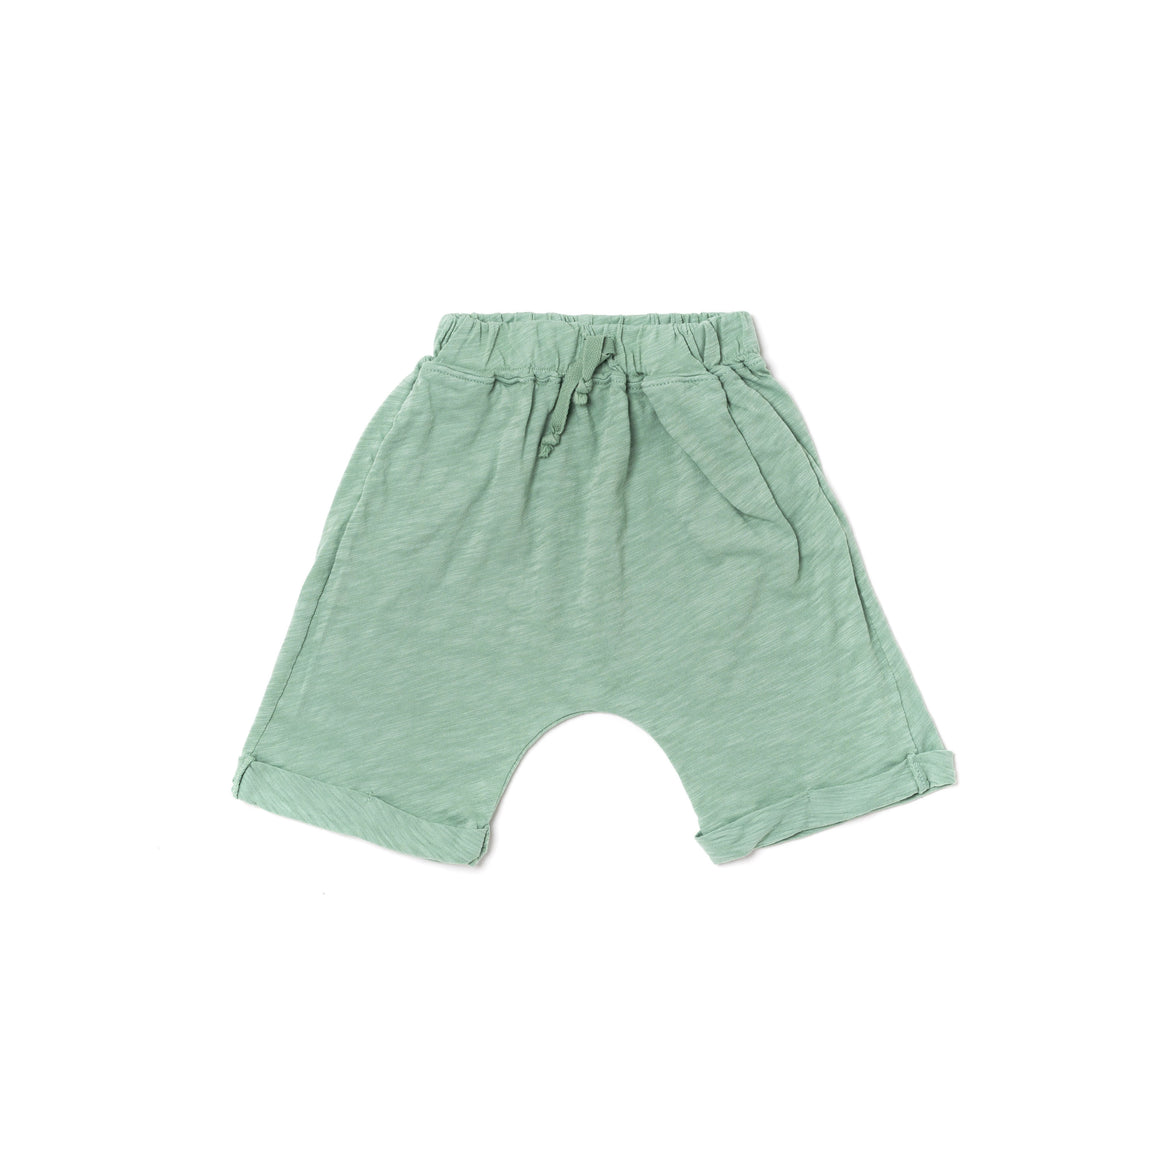 Lounge Shorts, Celadon